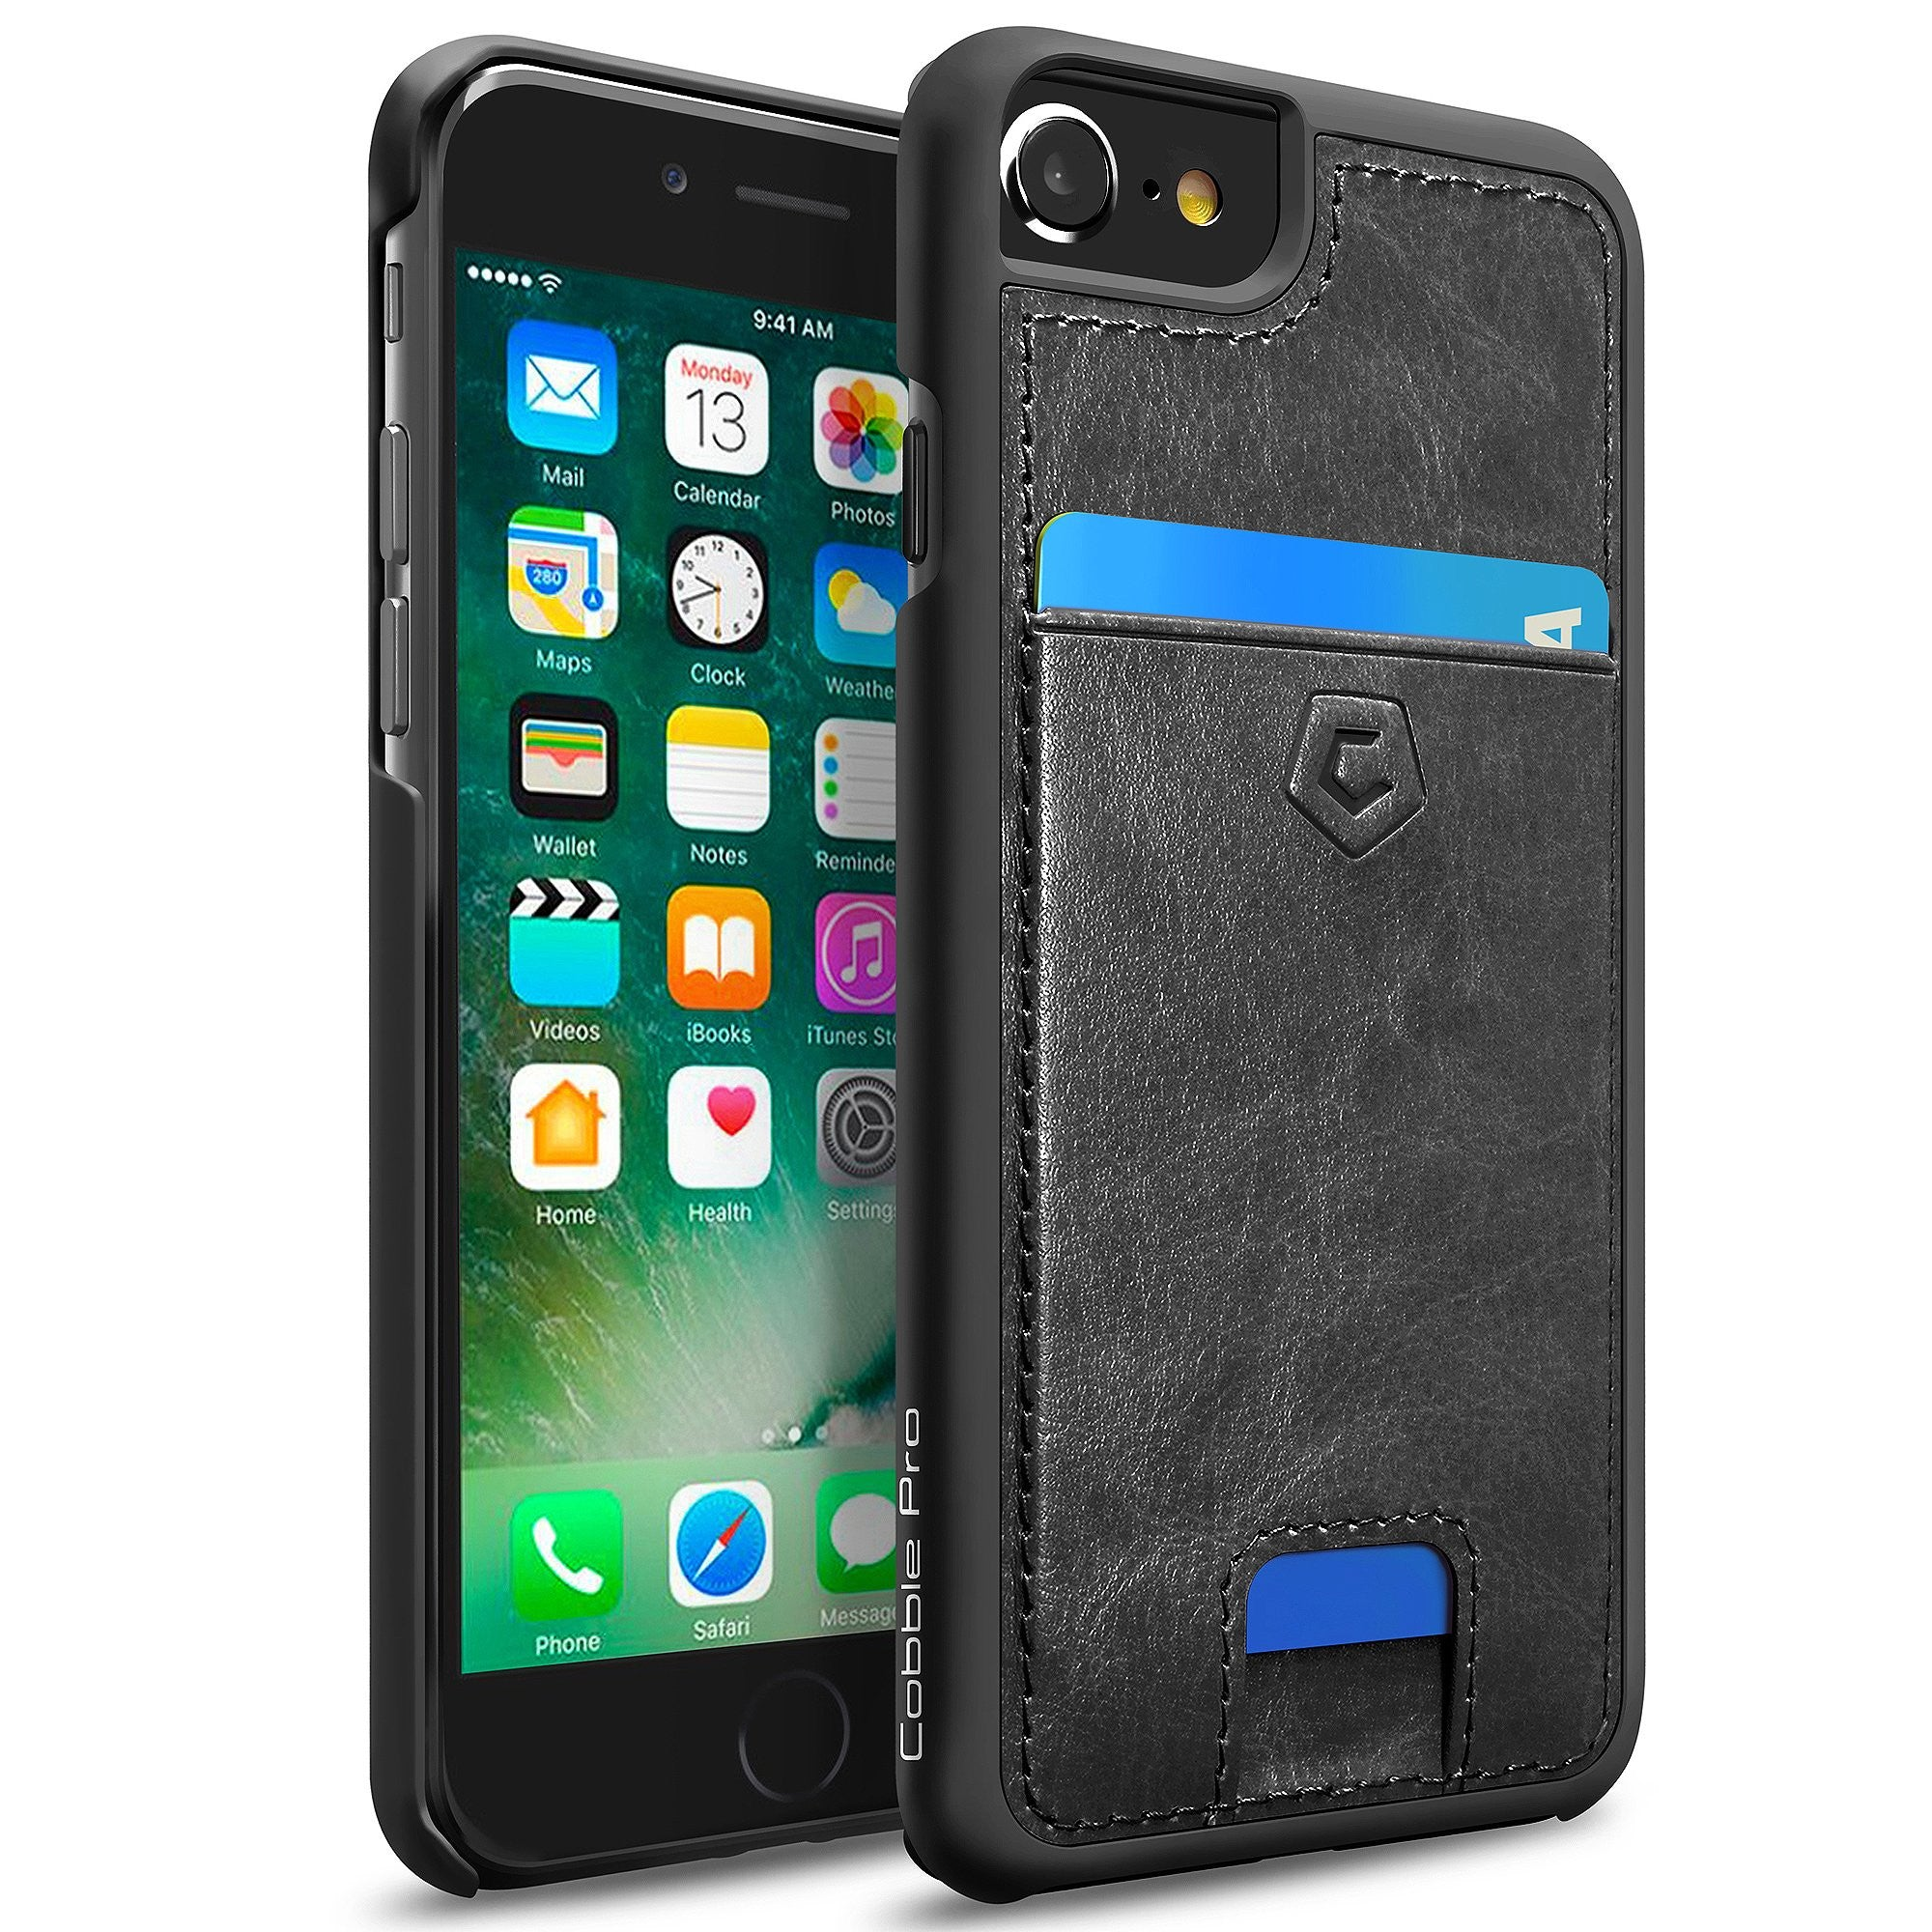 timeless design b5e09 7915e Black Premium Synthetic Leather Back Cover with Card Slot for iPhone  6/6s/7/8